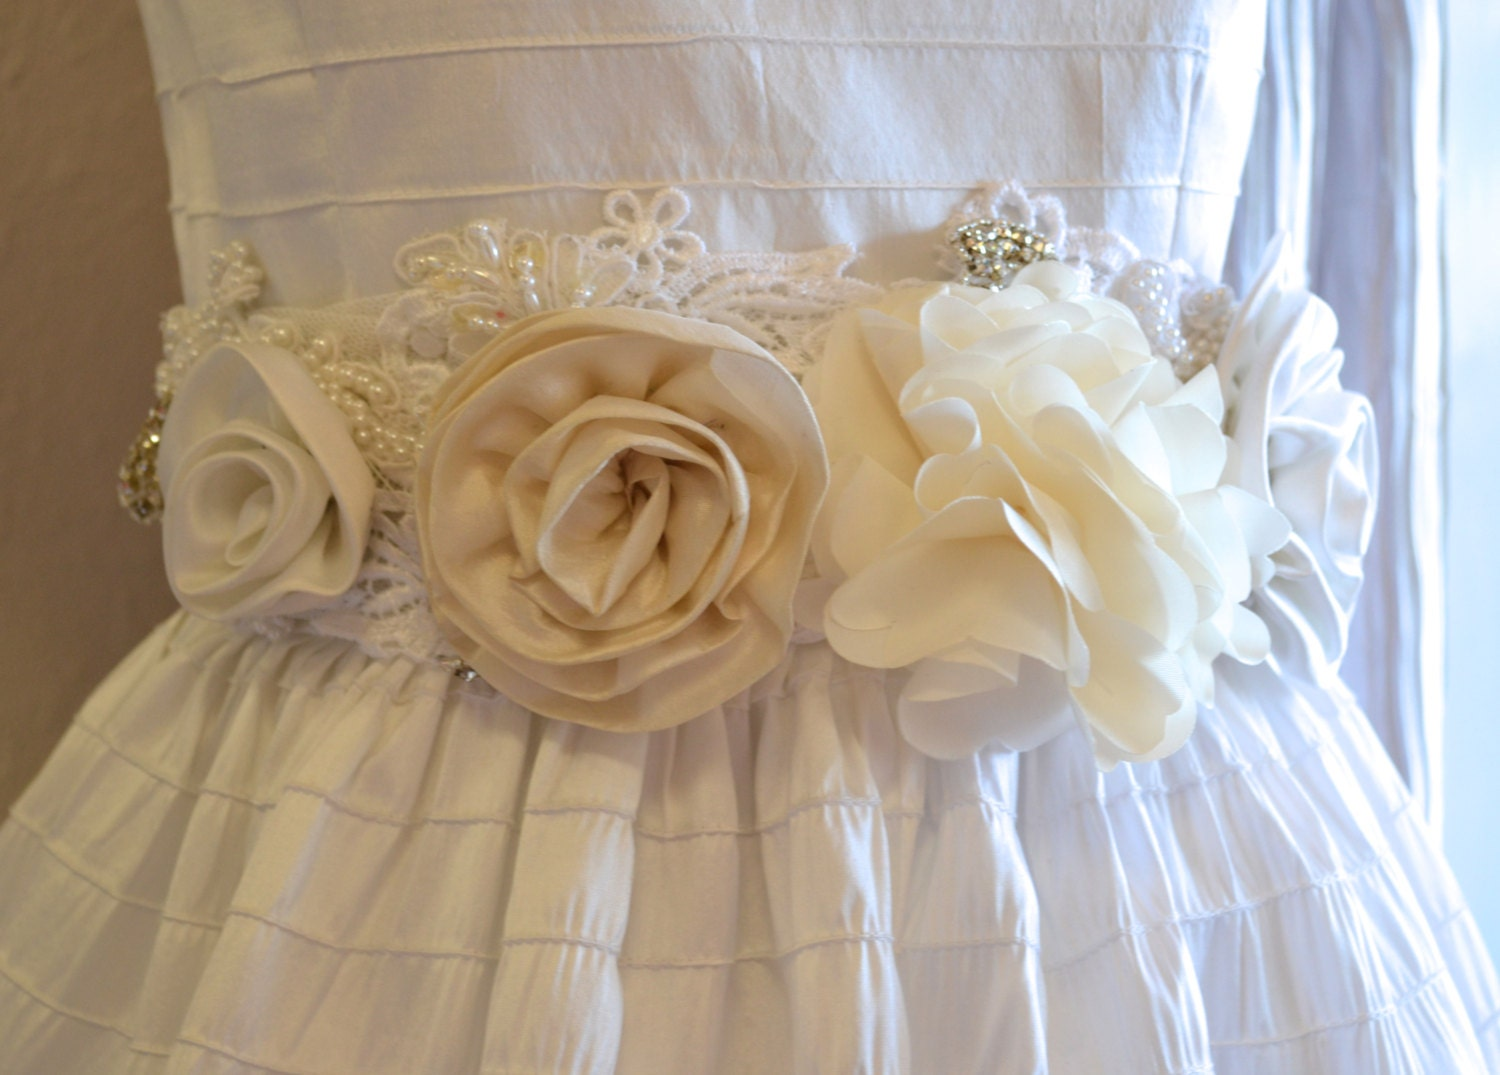 First munion Sash Flower Girl Sash Wedding Sash Bridal